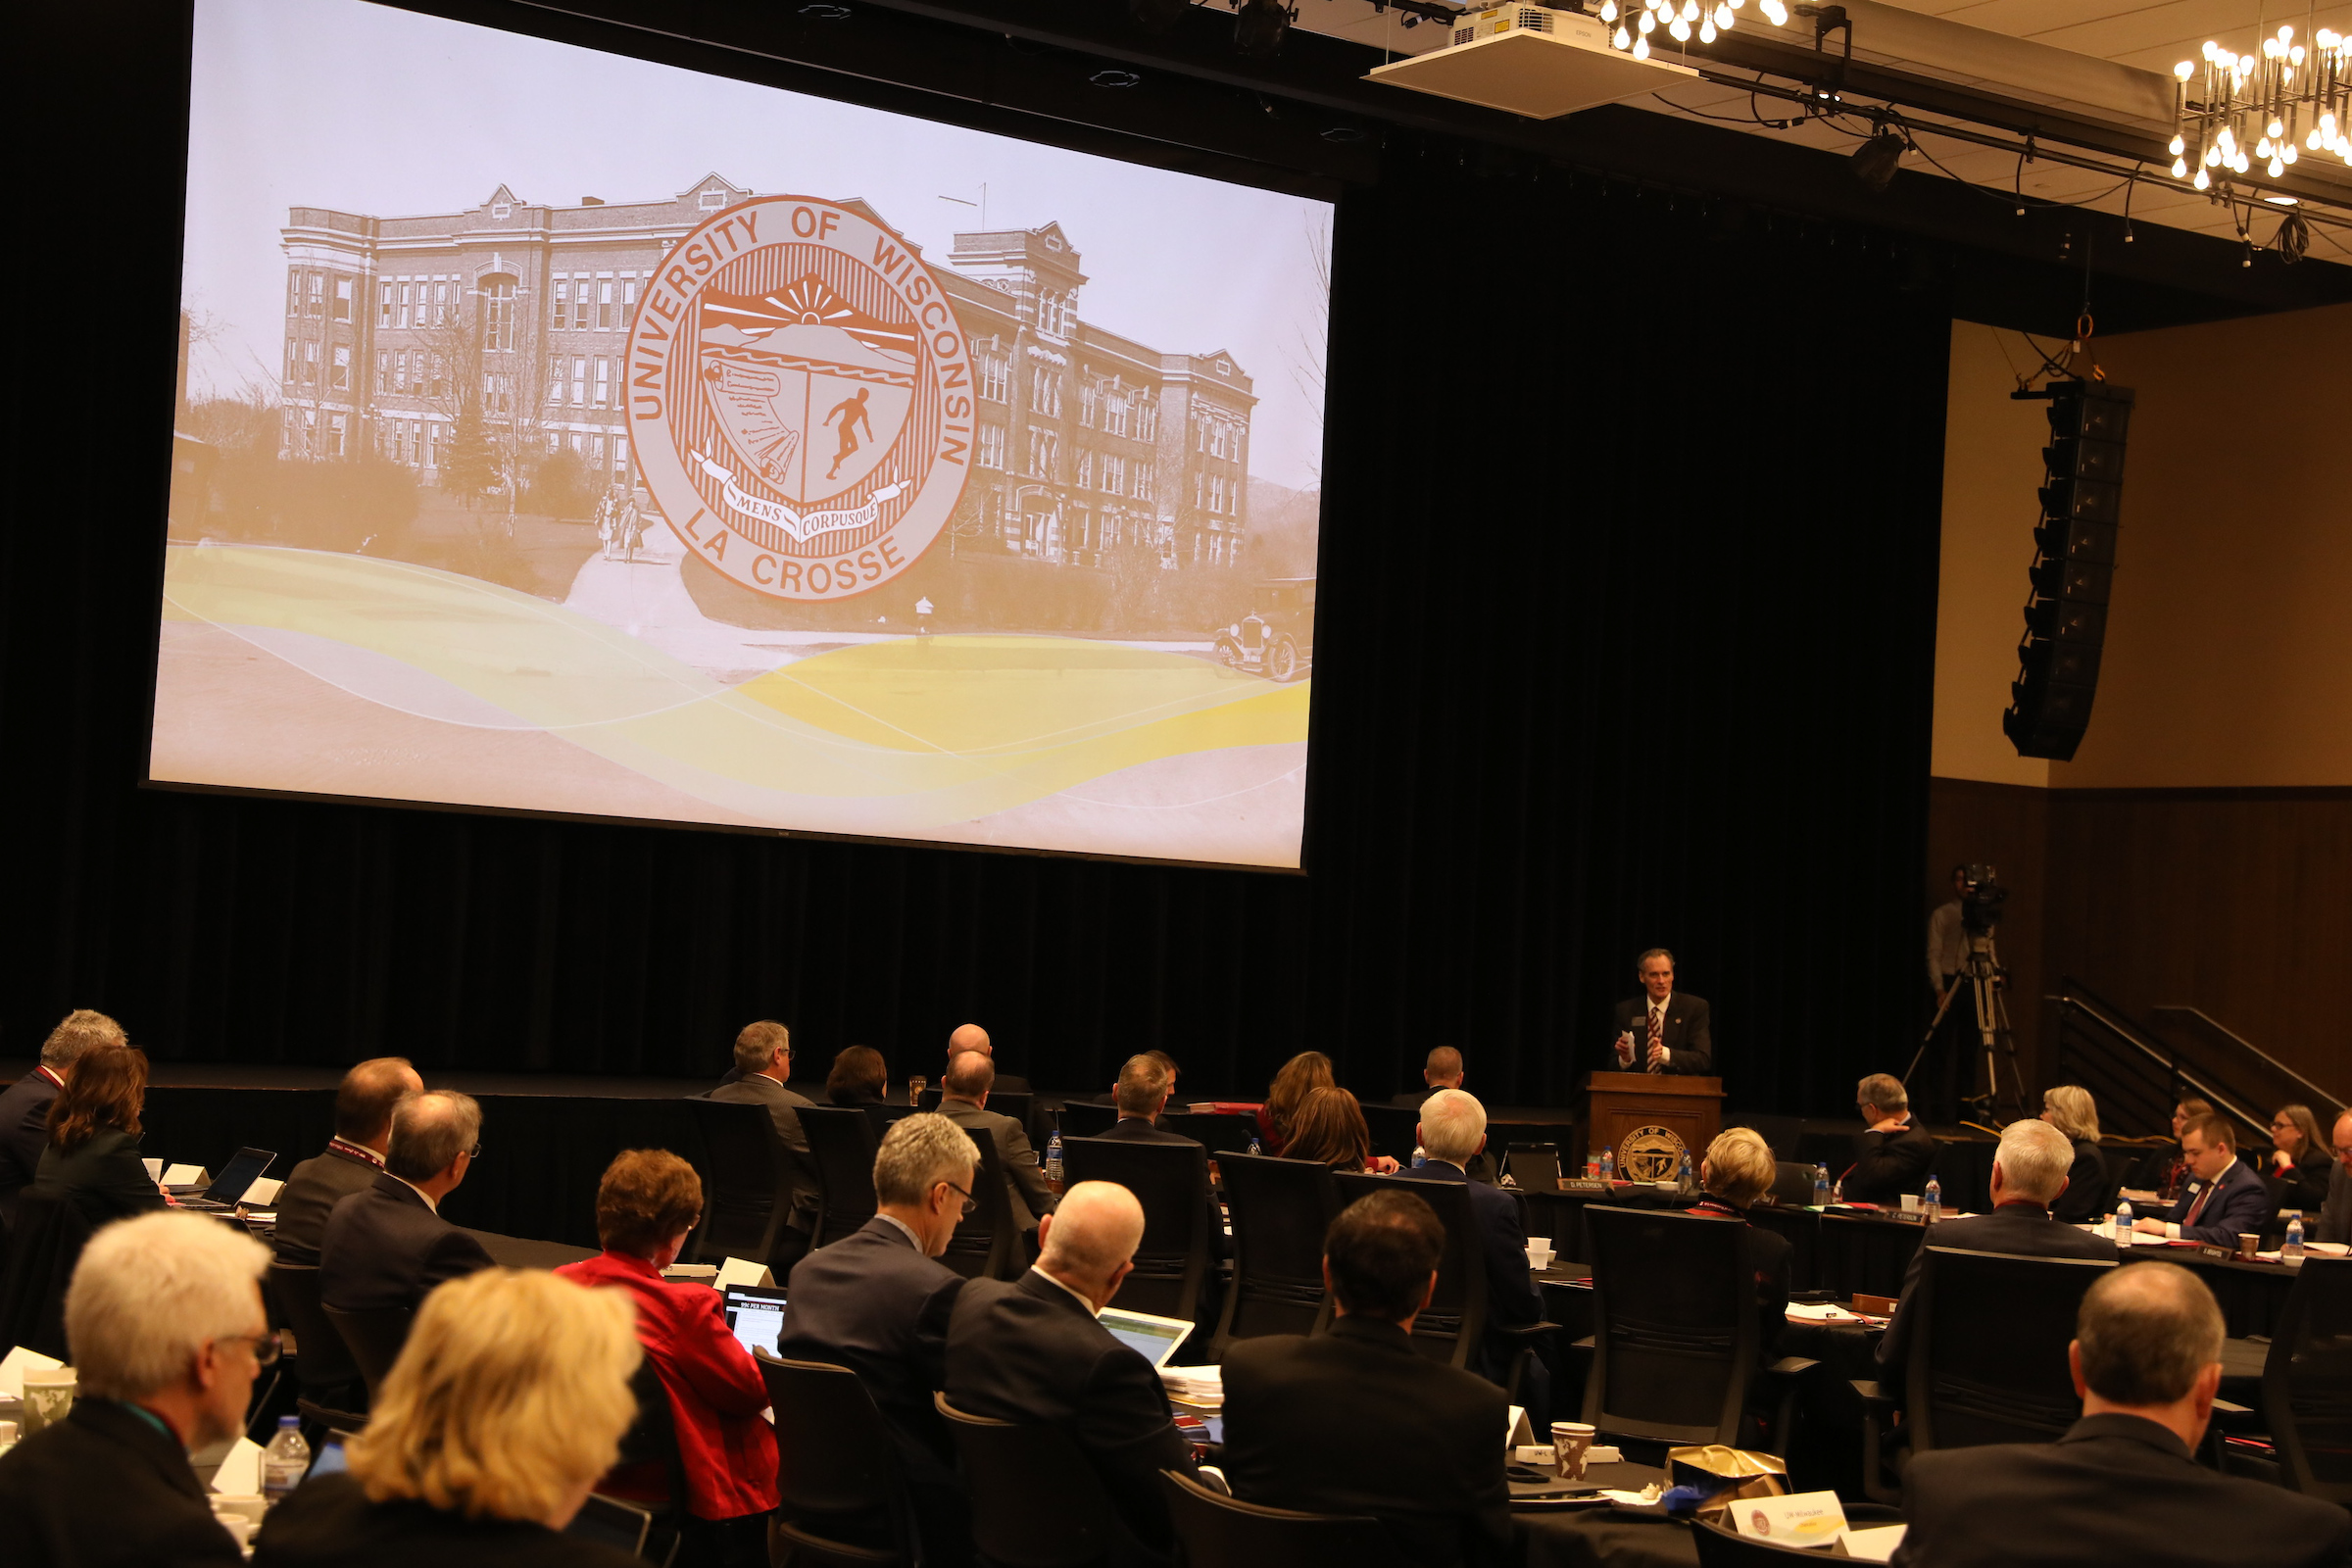 UW System Regents approve 3% annual increases in 2019-21 pay plan